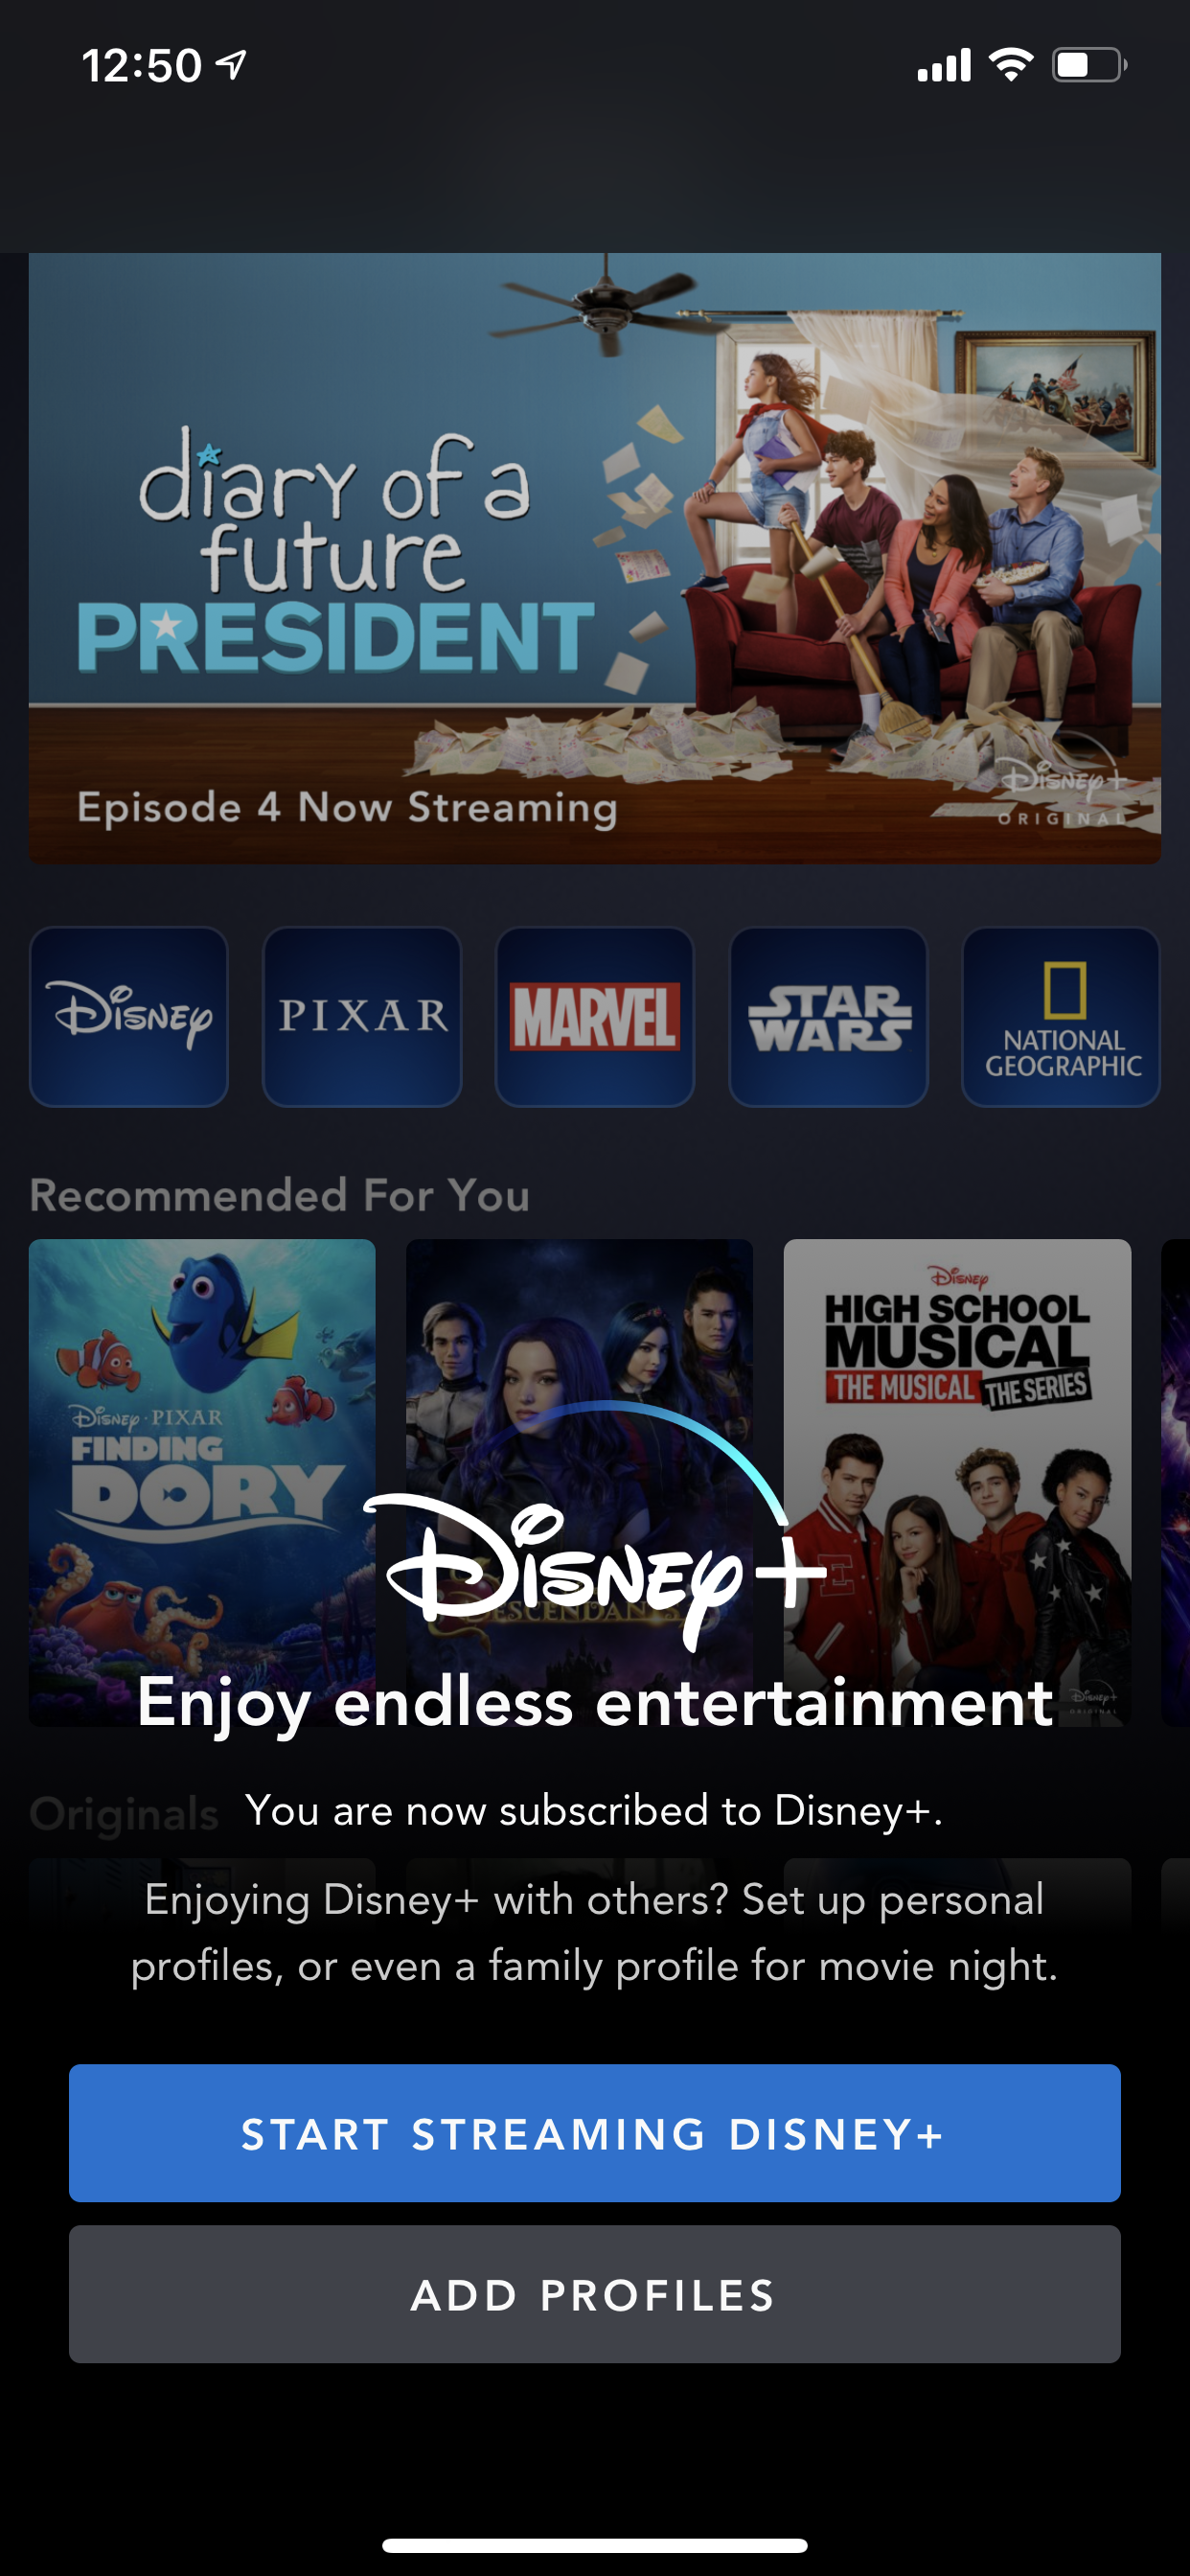 Example of App Design for iOS with the following features: interstitial ~ splash, text button, background image. App by DisneyPlus (iPhone X)